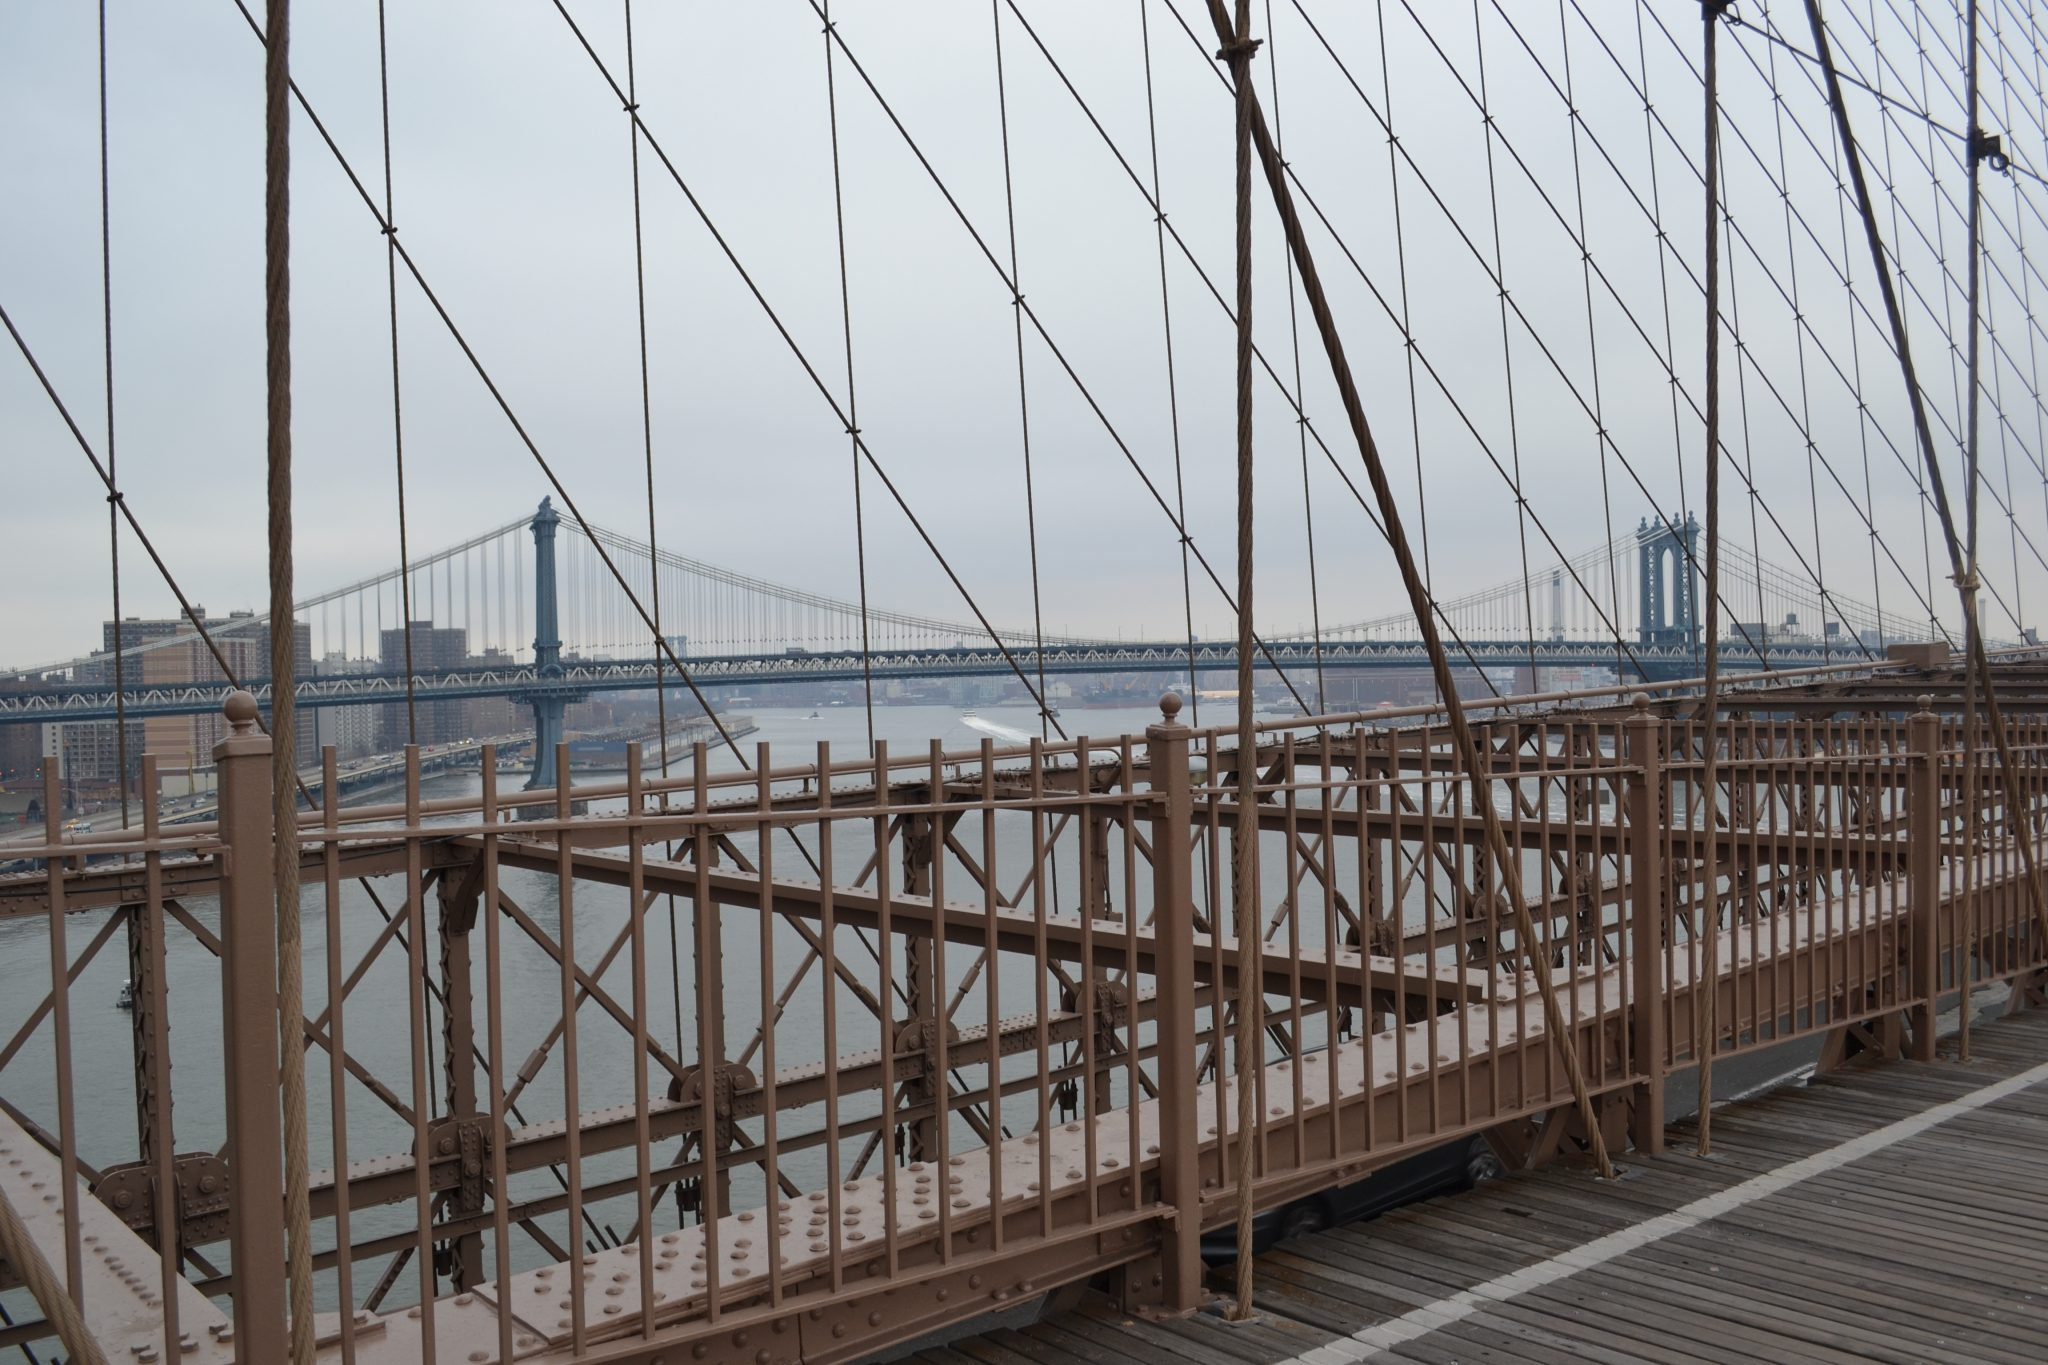 New York Part 6: Brooklyn Bridge & Citystore - dsc 0022